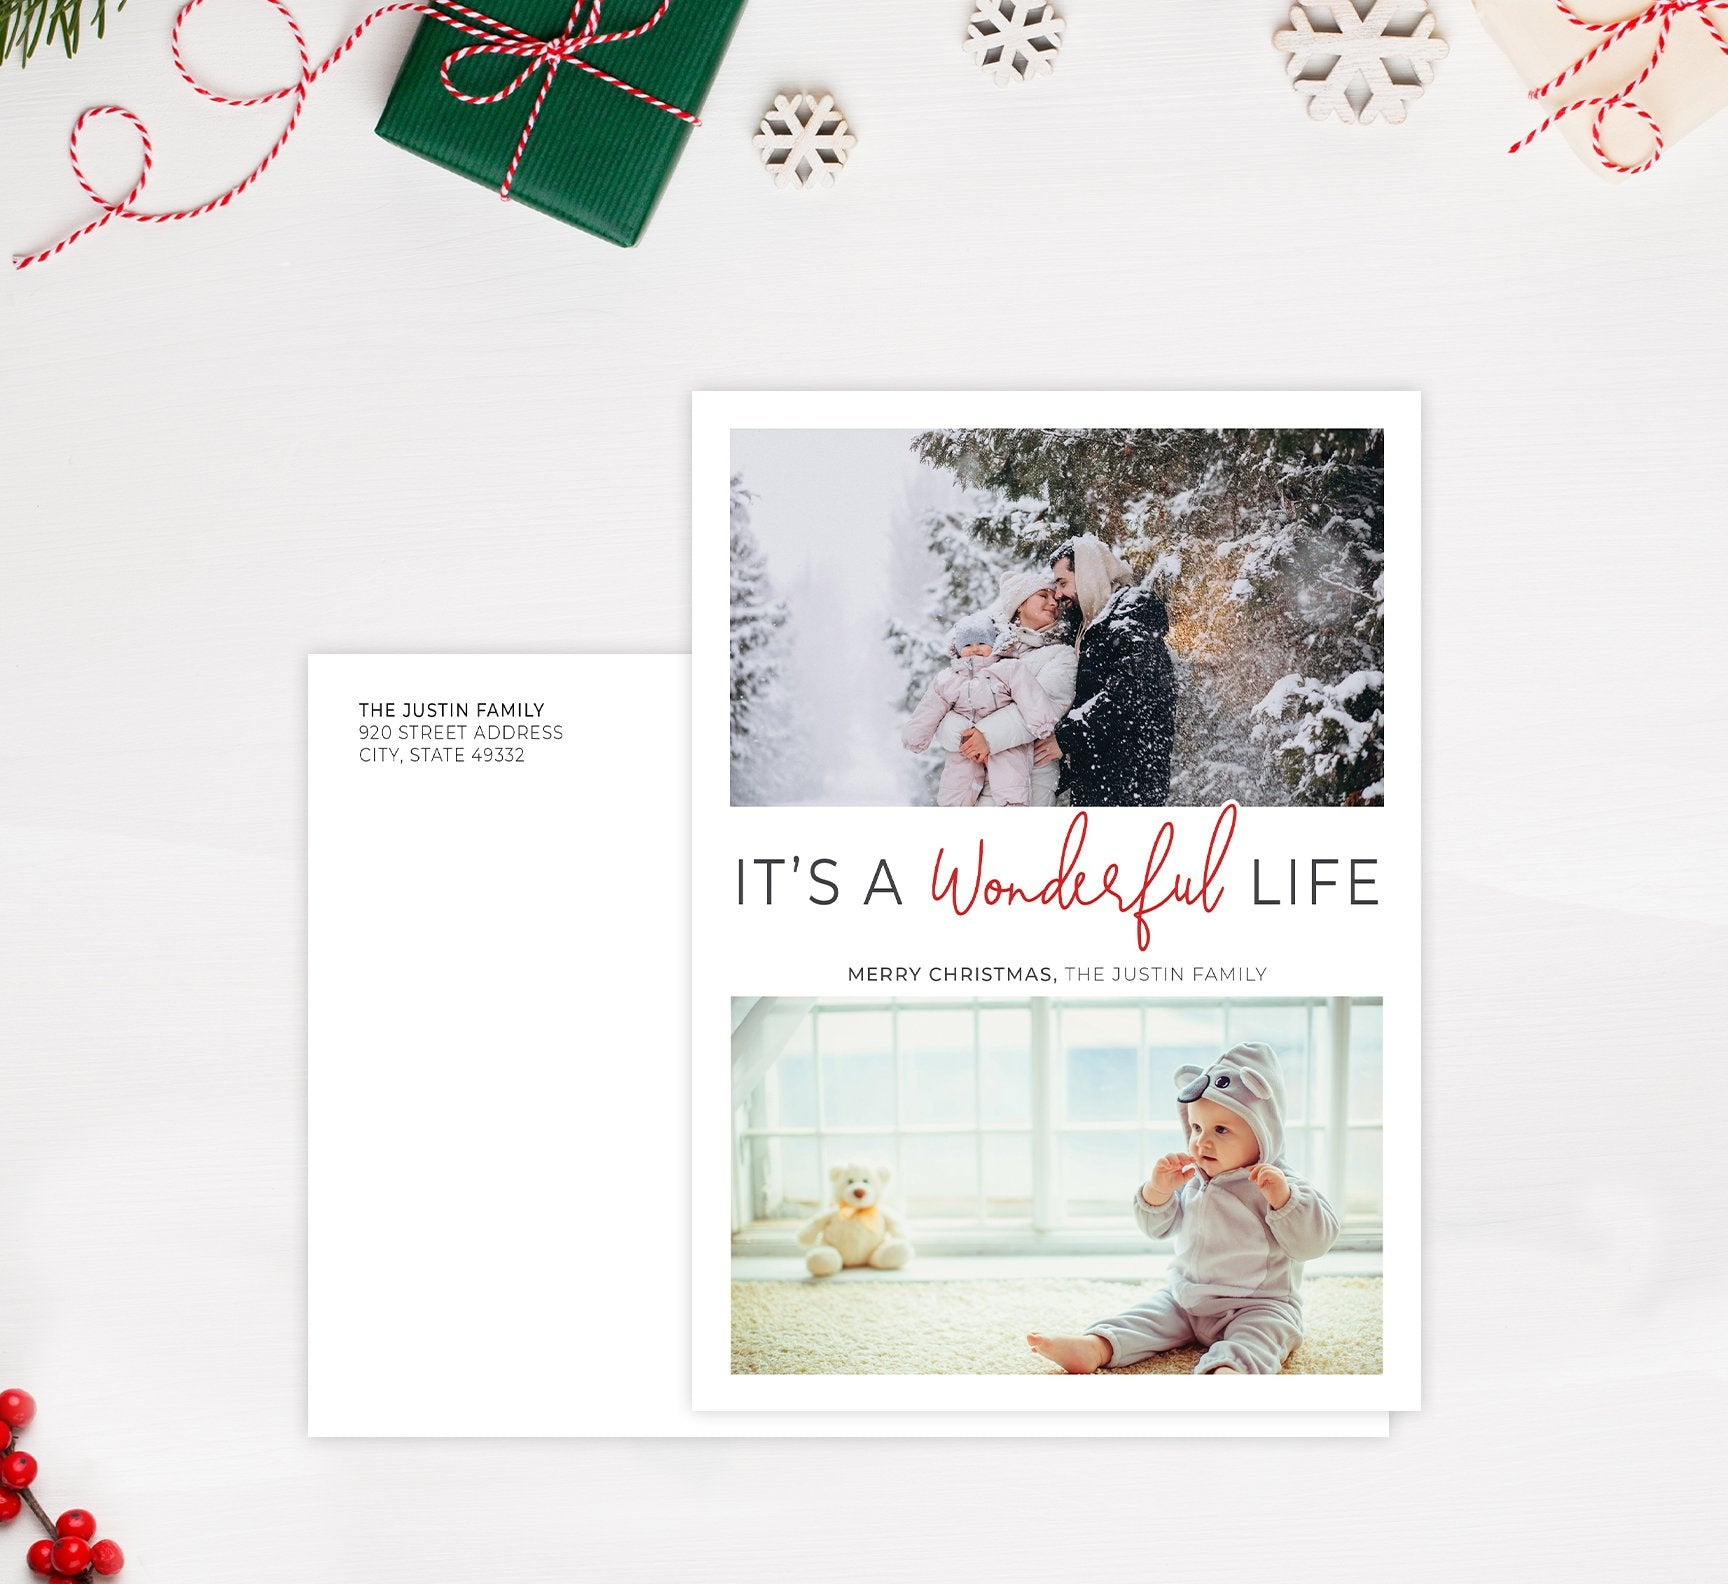 Wonderful Life Holiday Card Mockup; Holiday card with envelope and return address printed on it.